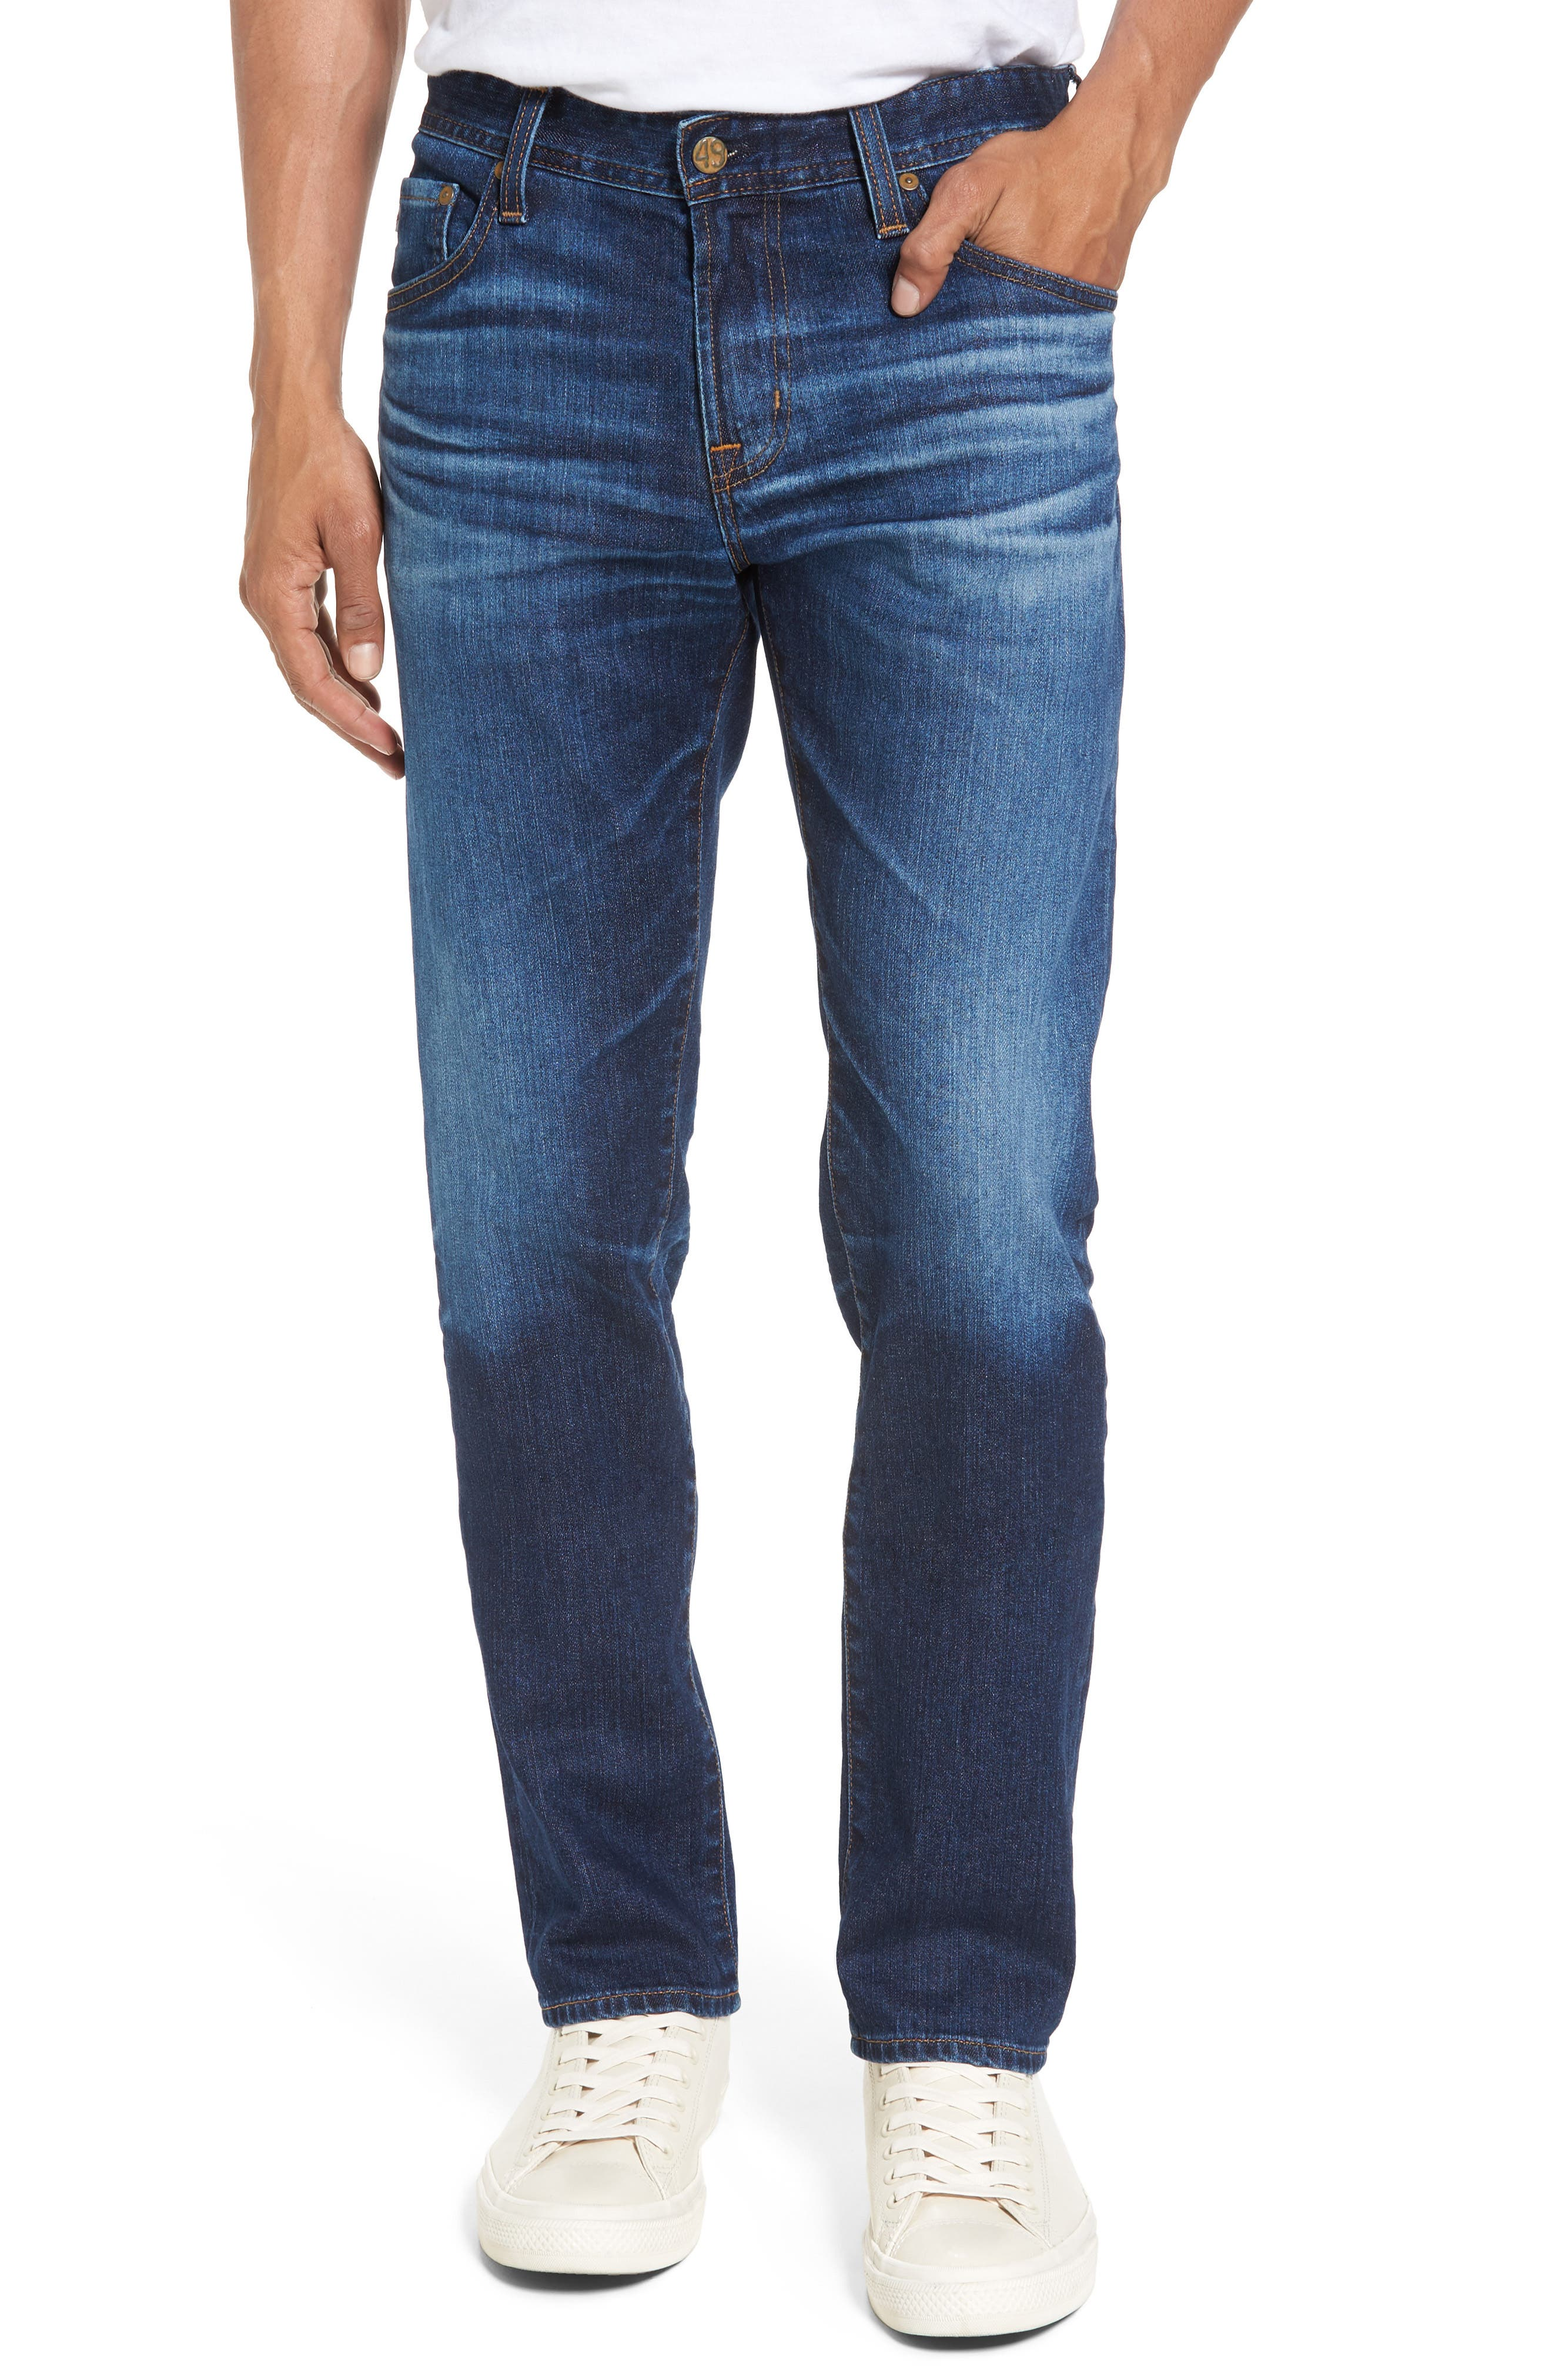 AG Jeans Tellis Slim Fit Jeans (6 Years Projector Destroyed)